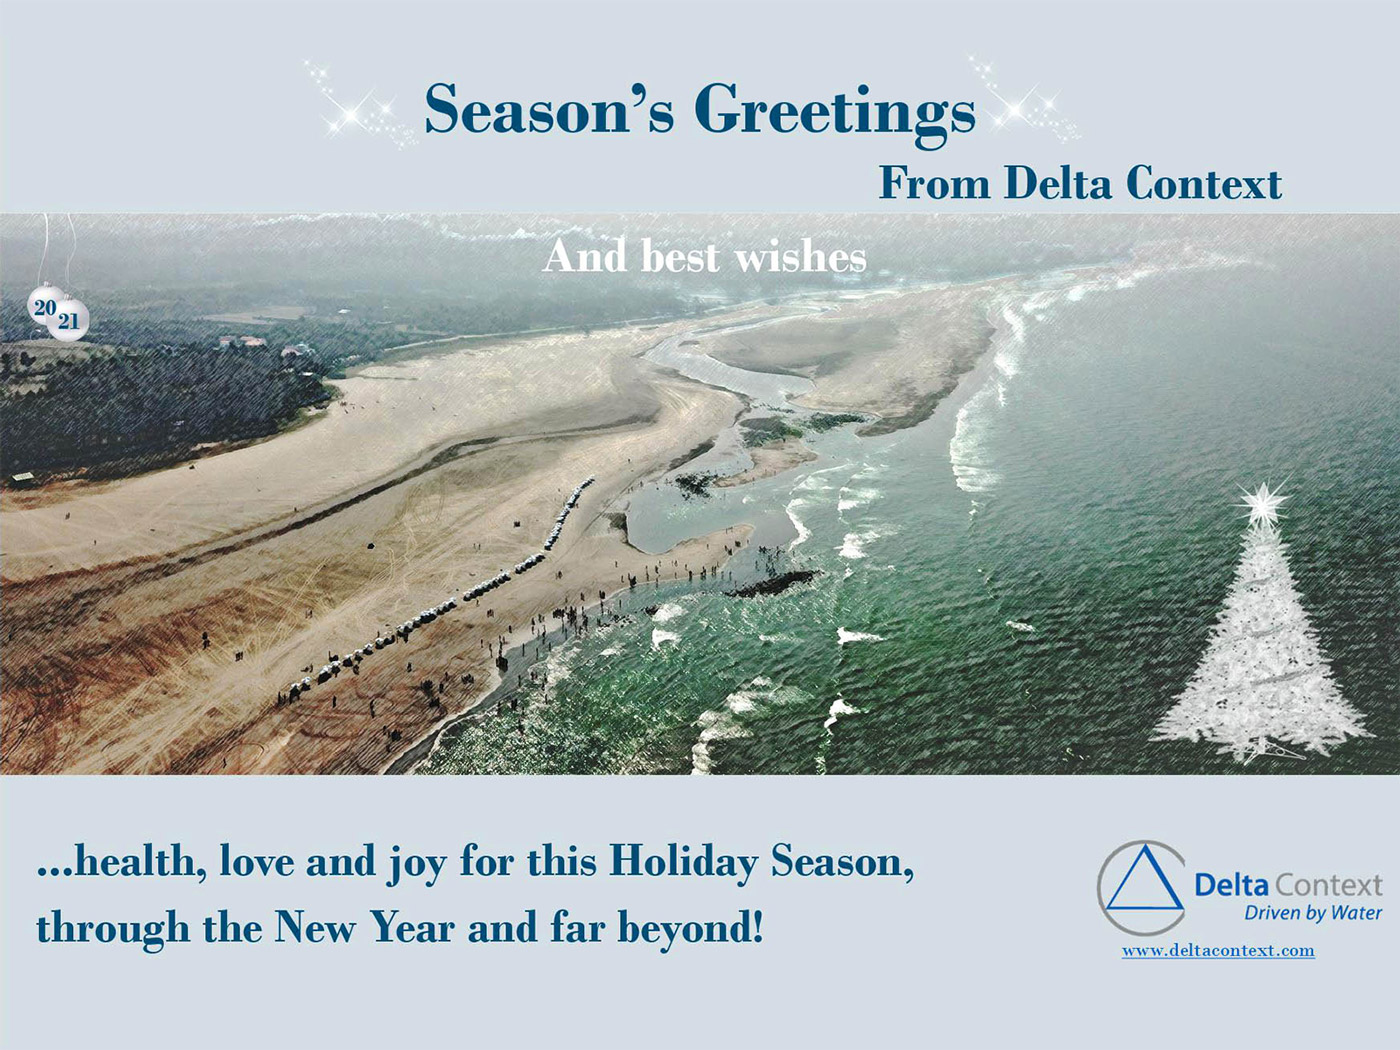 Season's Greetings from Delta Context!